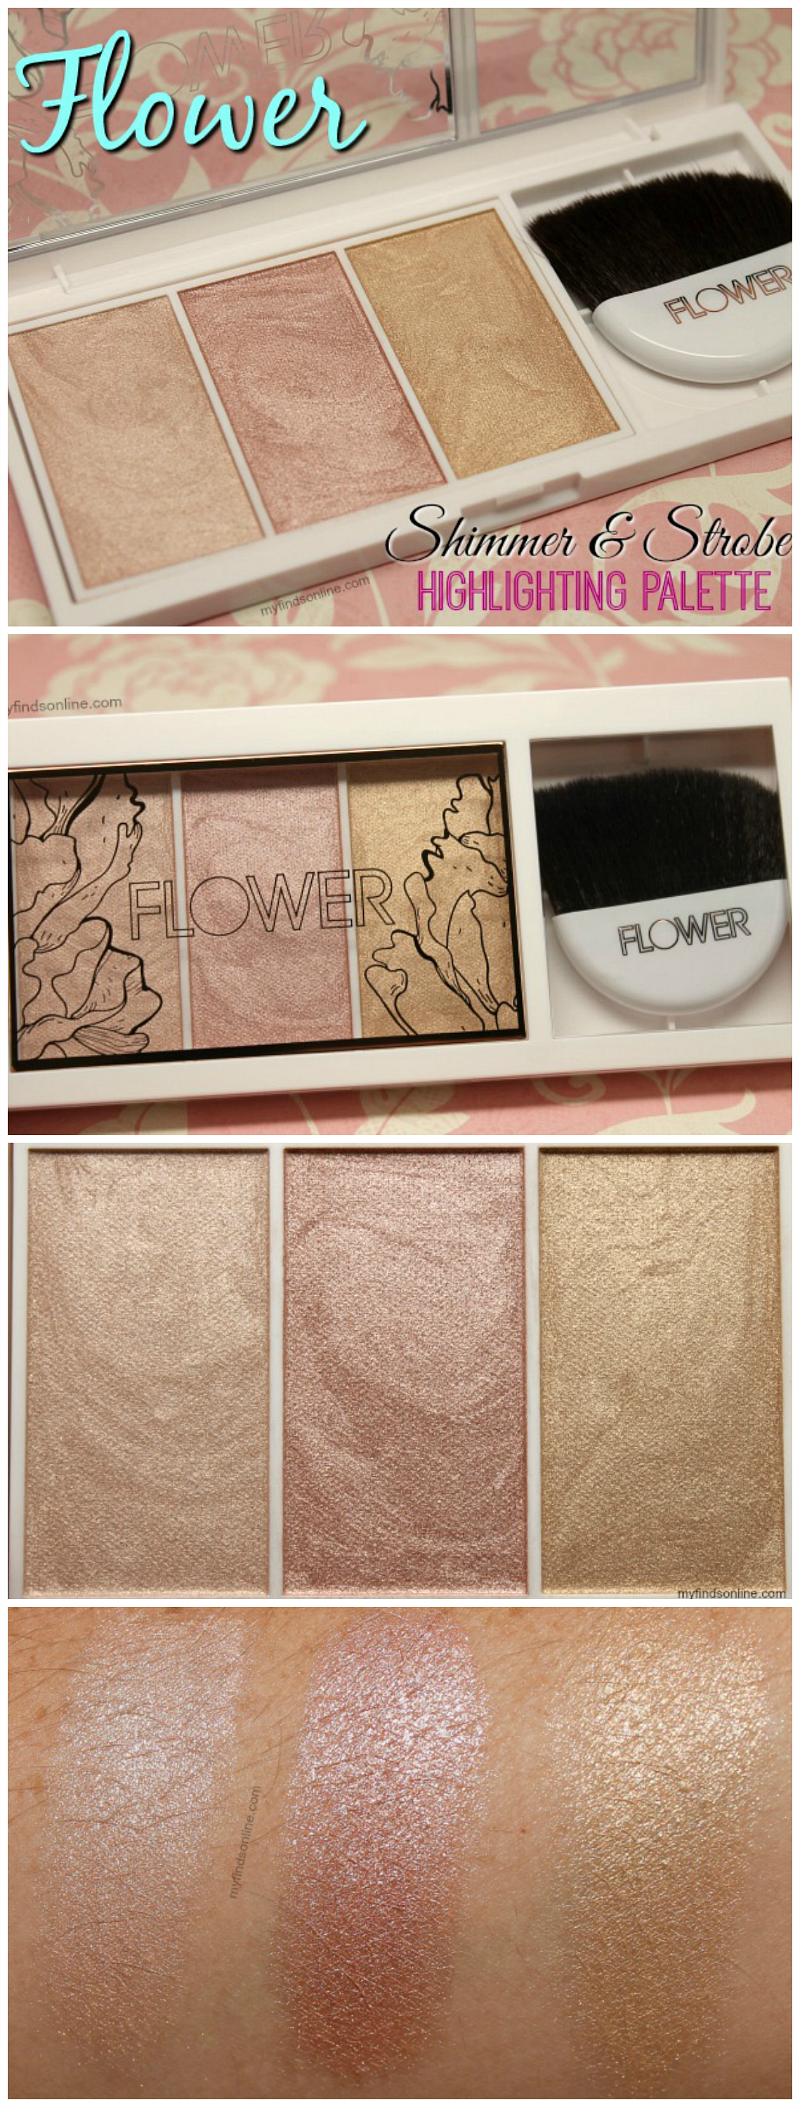 Flower beauty shimmer strobe highlighting palette review swatches flower beauty shimmer strobe highlighting palette pics review and swatches myfindsonline izmirmasajfo